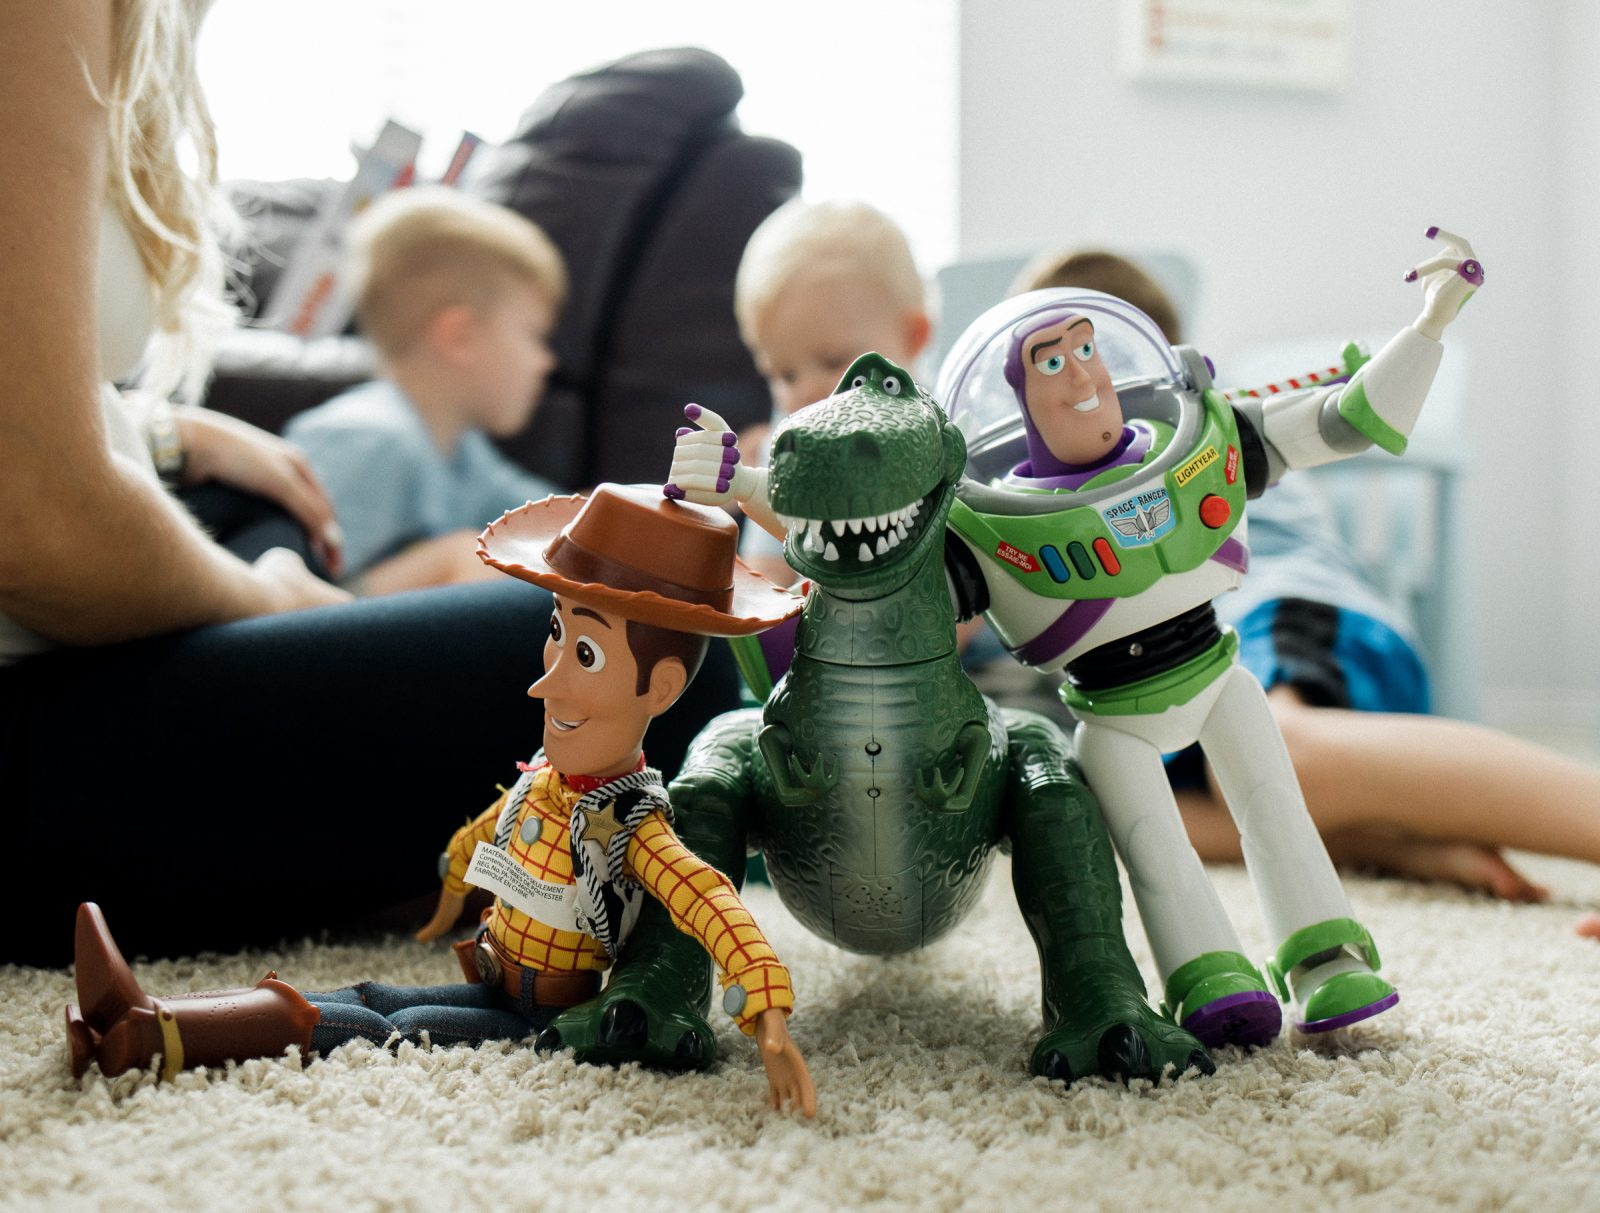 Blogger Uptown with Elly Brown opens up about her struggle with learning to slow down with kids and how she is Creating Special Moments with Toy Story 4.